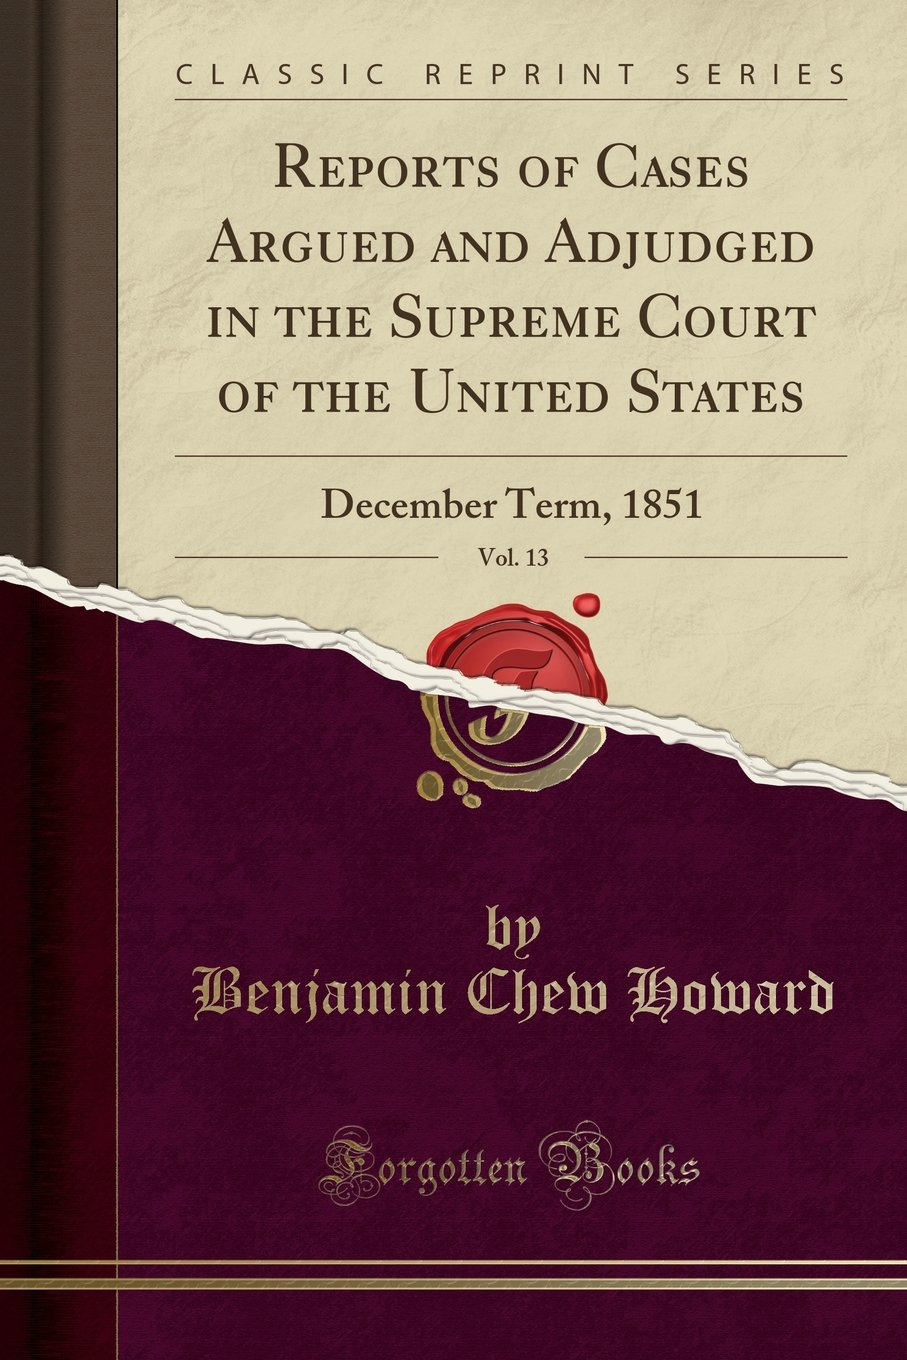 Reports of Cases Argued and Adjudged in the Supreme Court of the United States, Vol. 13: December Term, 1851 (Classic Reprint) ebook